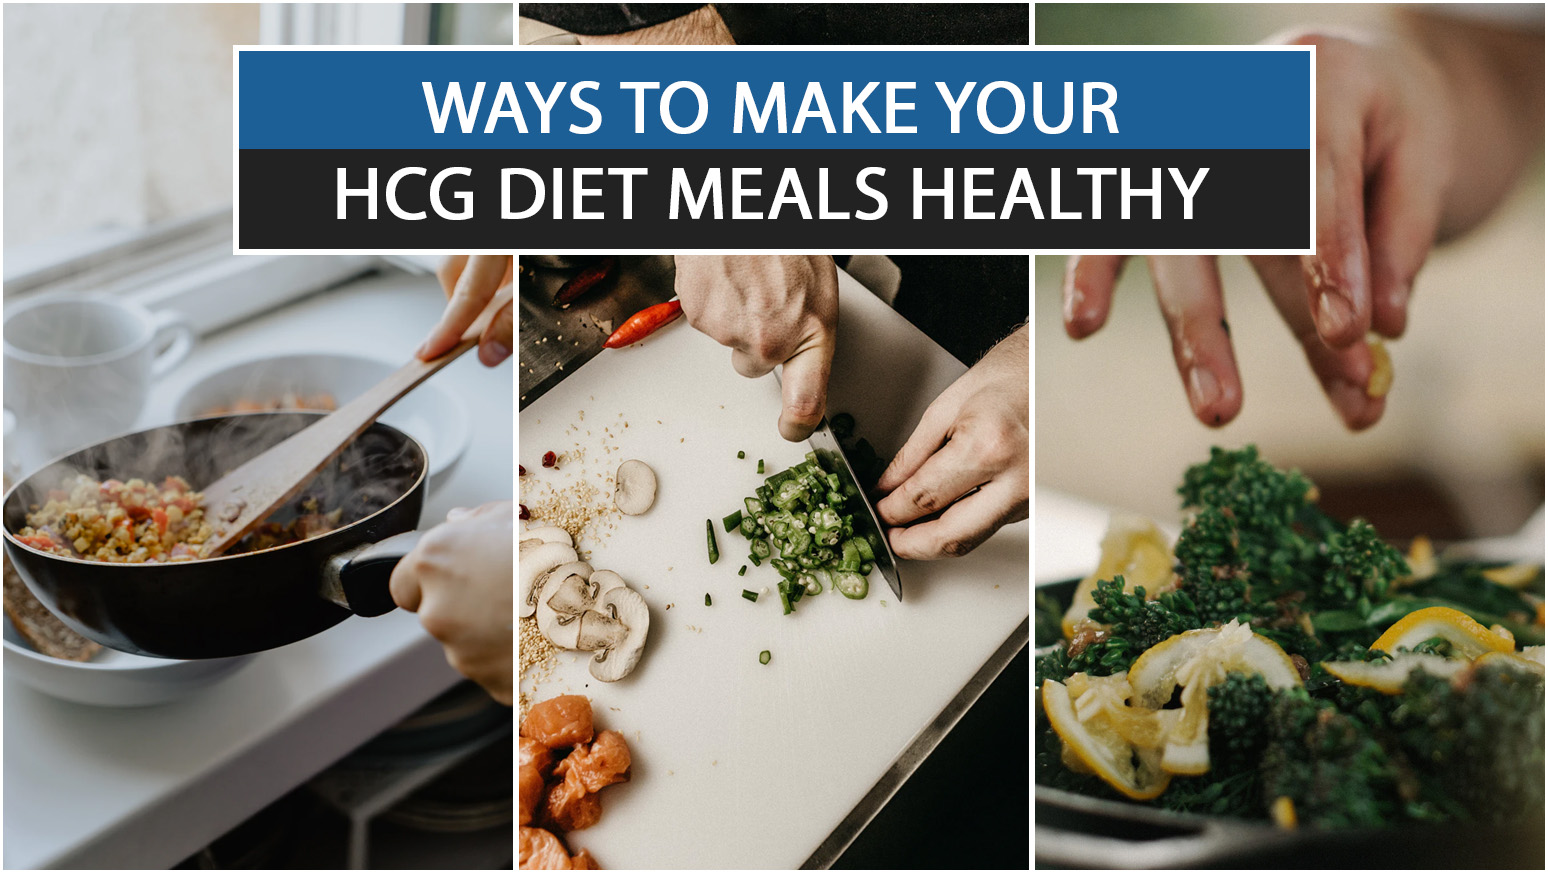 WAYS TO MAKE YOUR HCG DIET MEALS HEALTHY